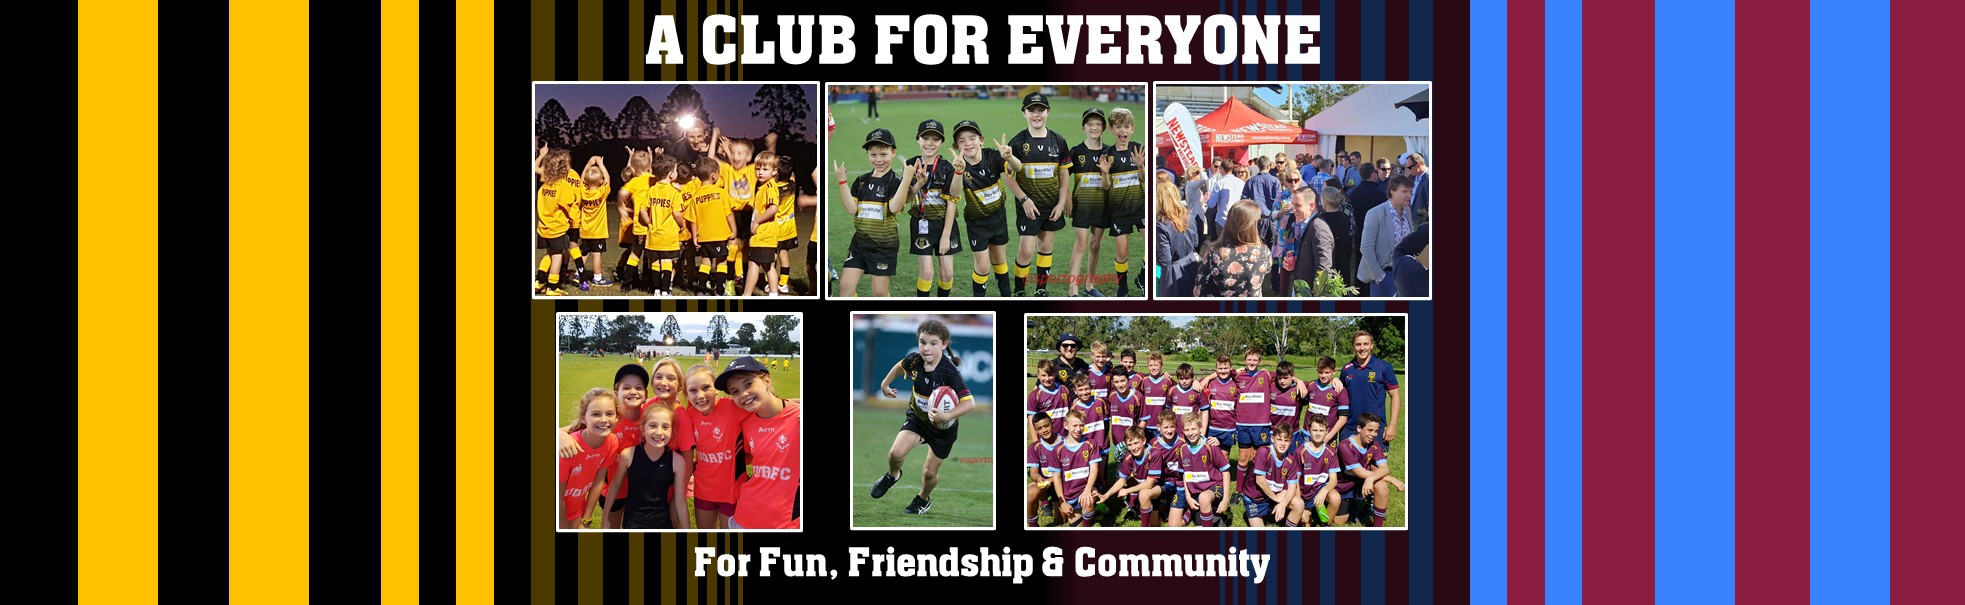 A club for all FB banner